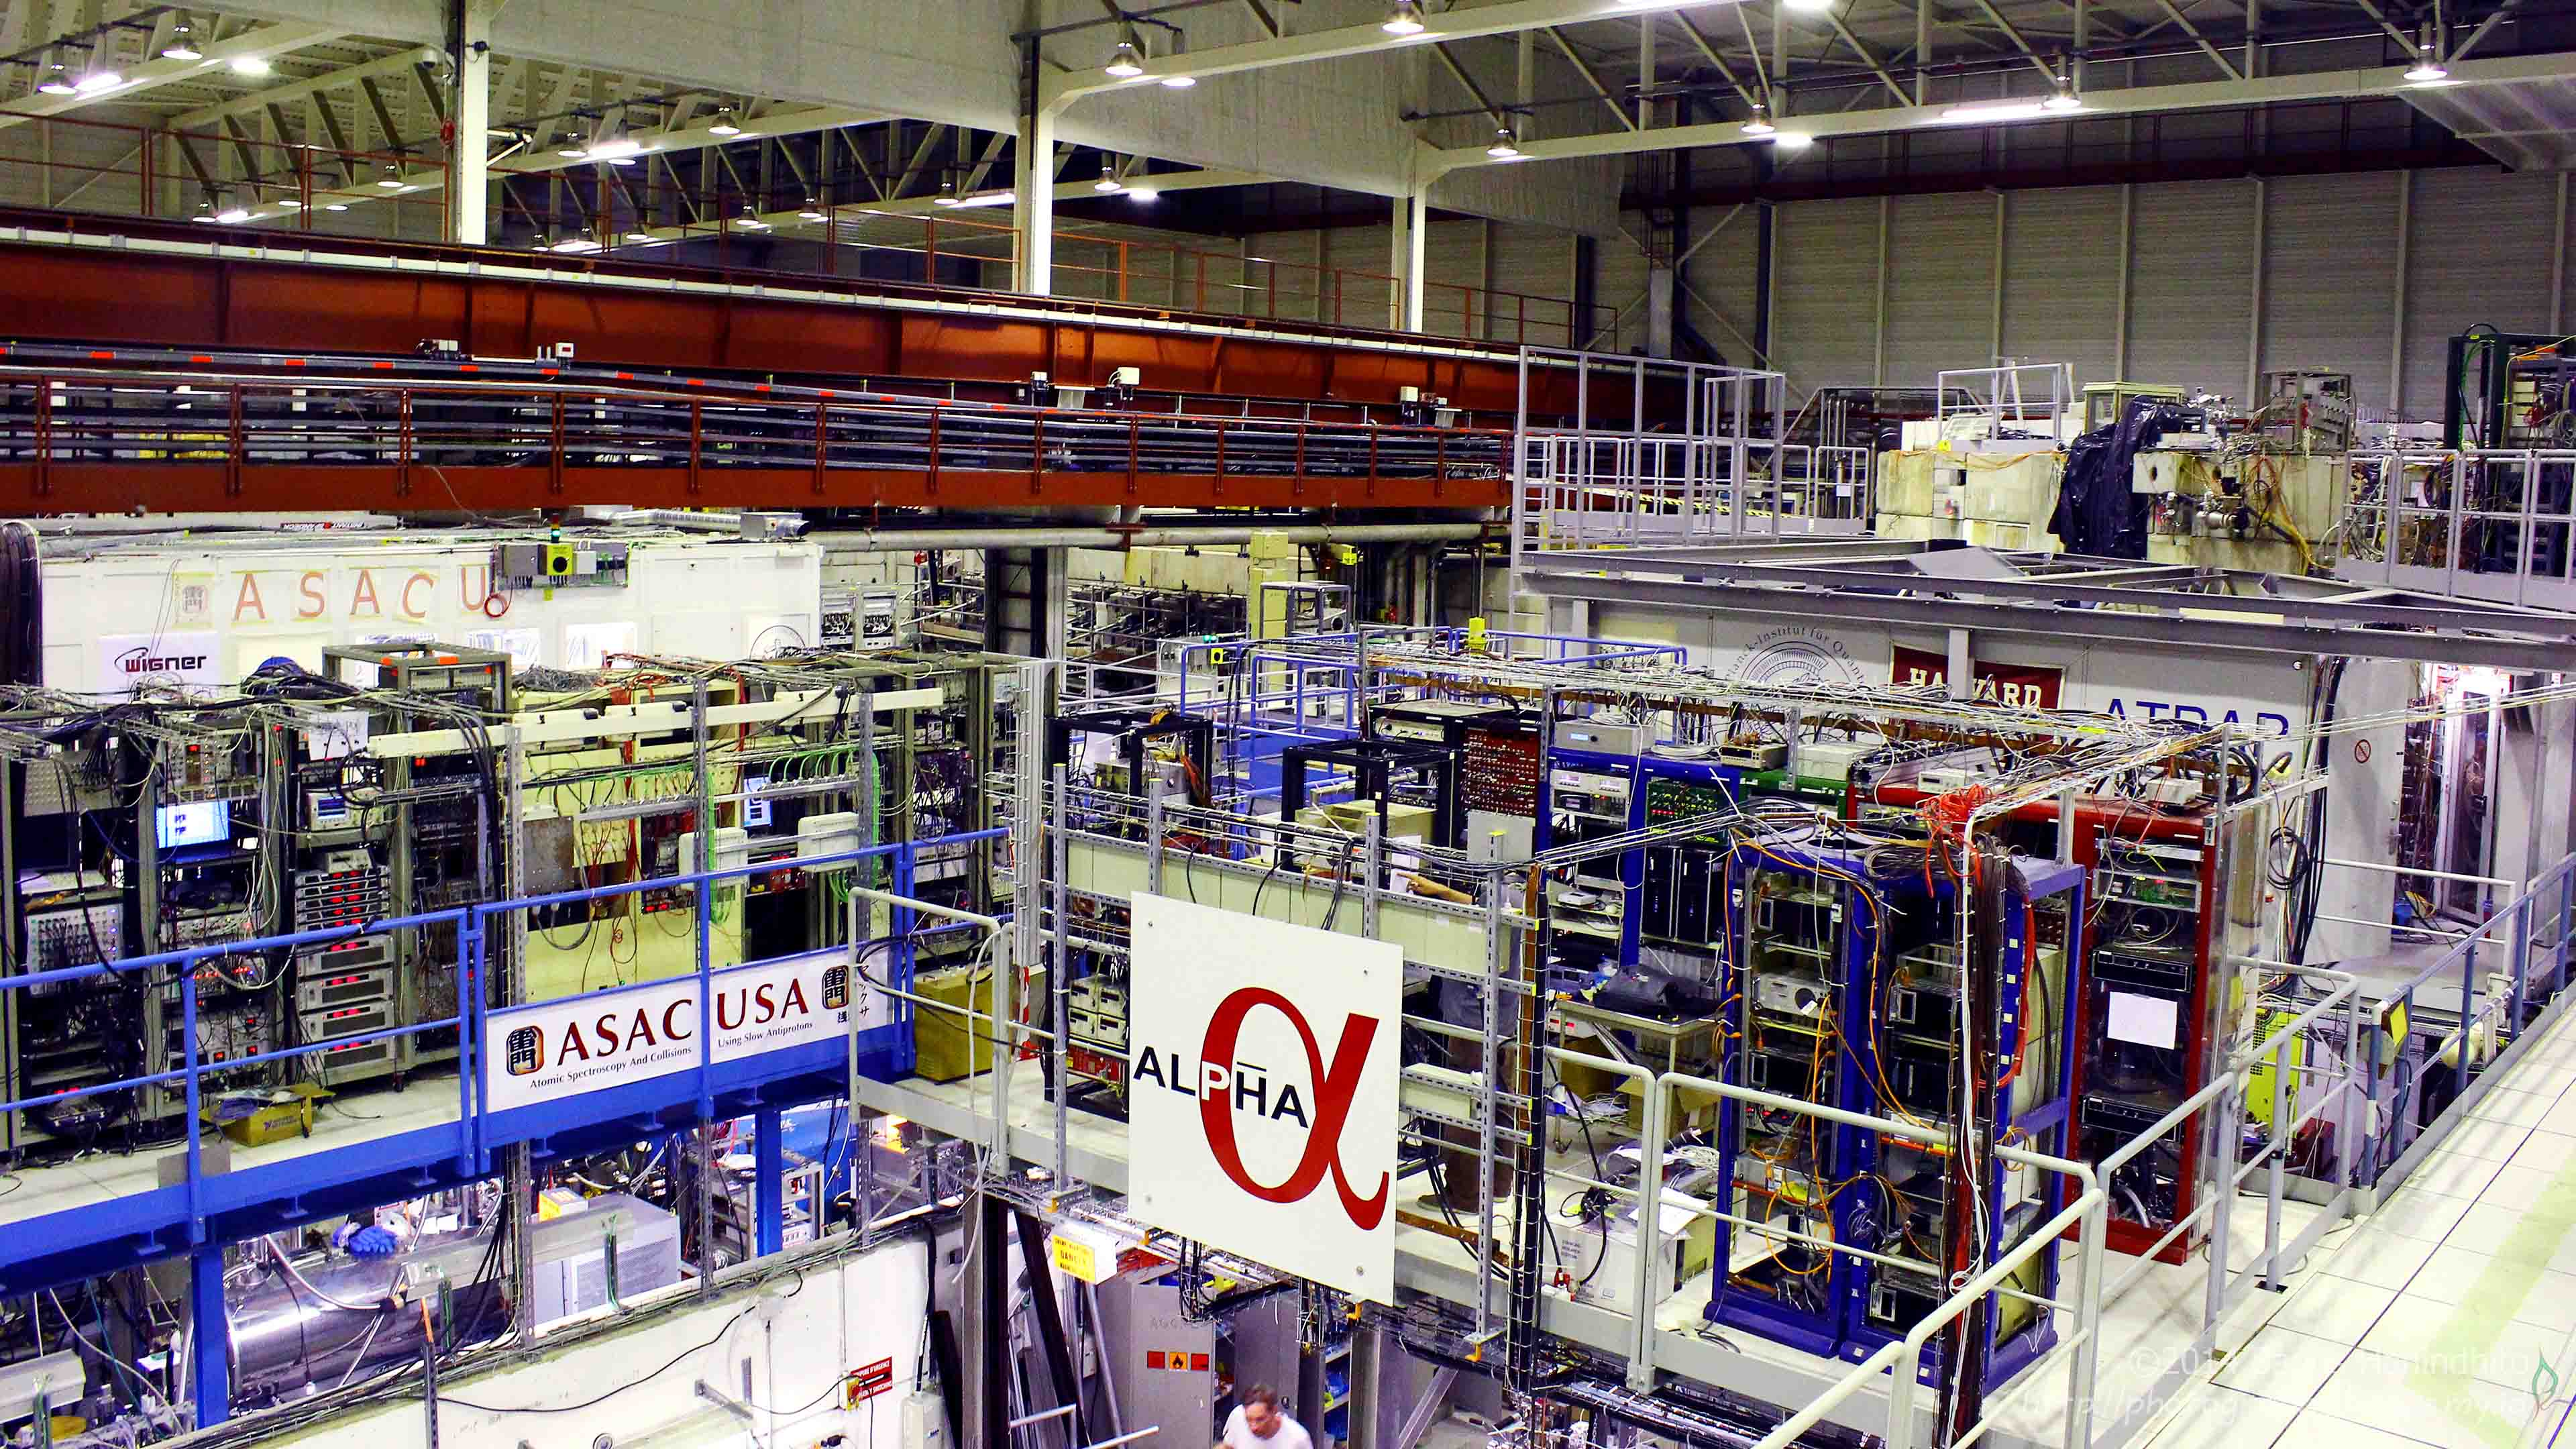 Some of the experiment collaborations at CERN Antiproton Decelerator facility.